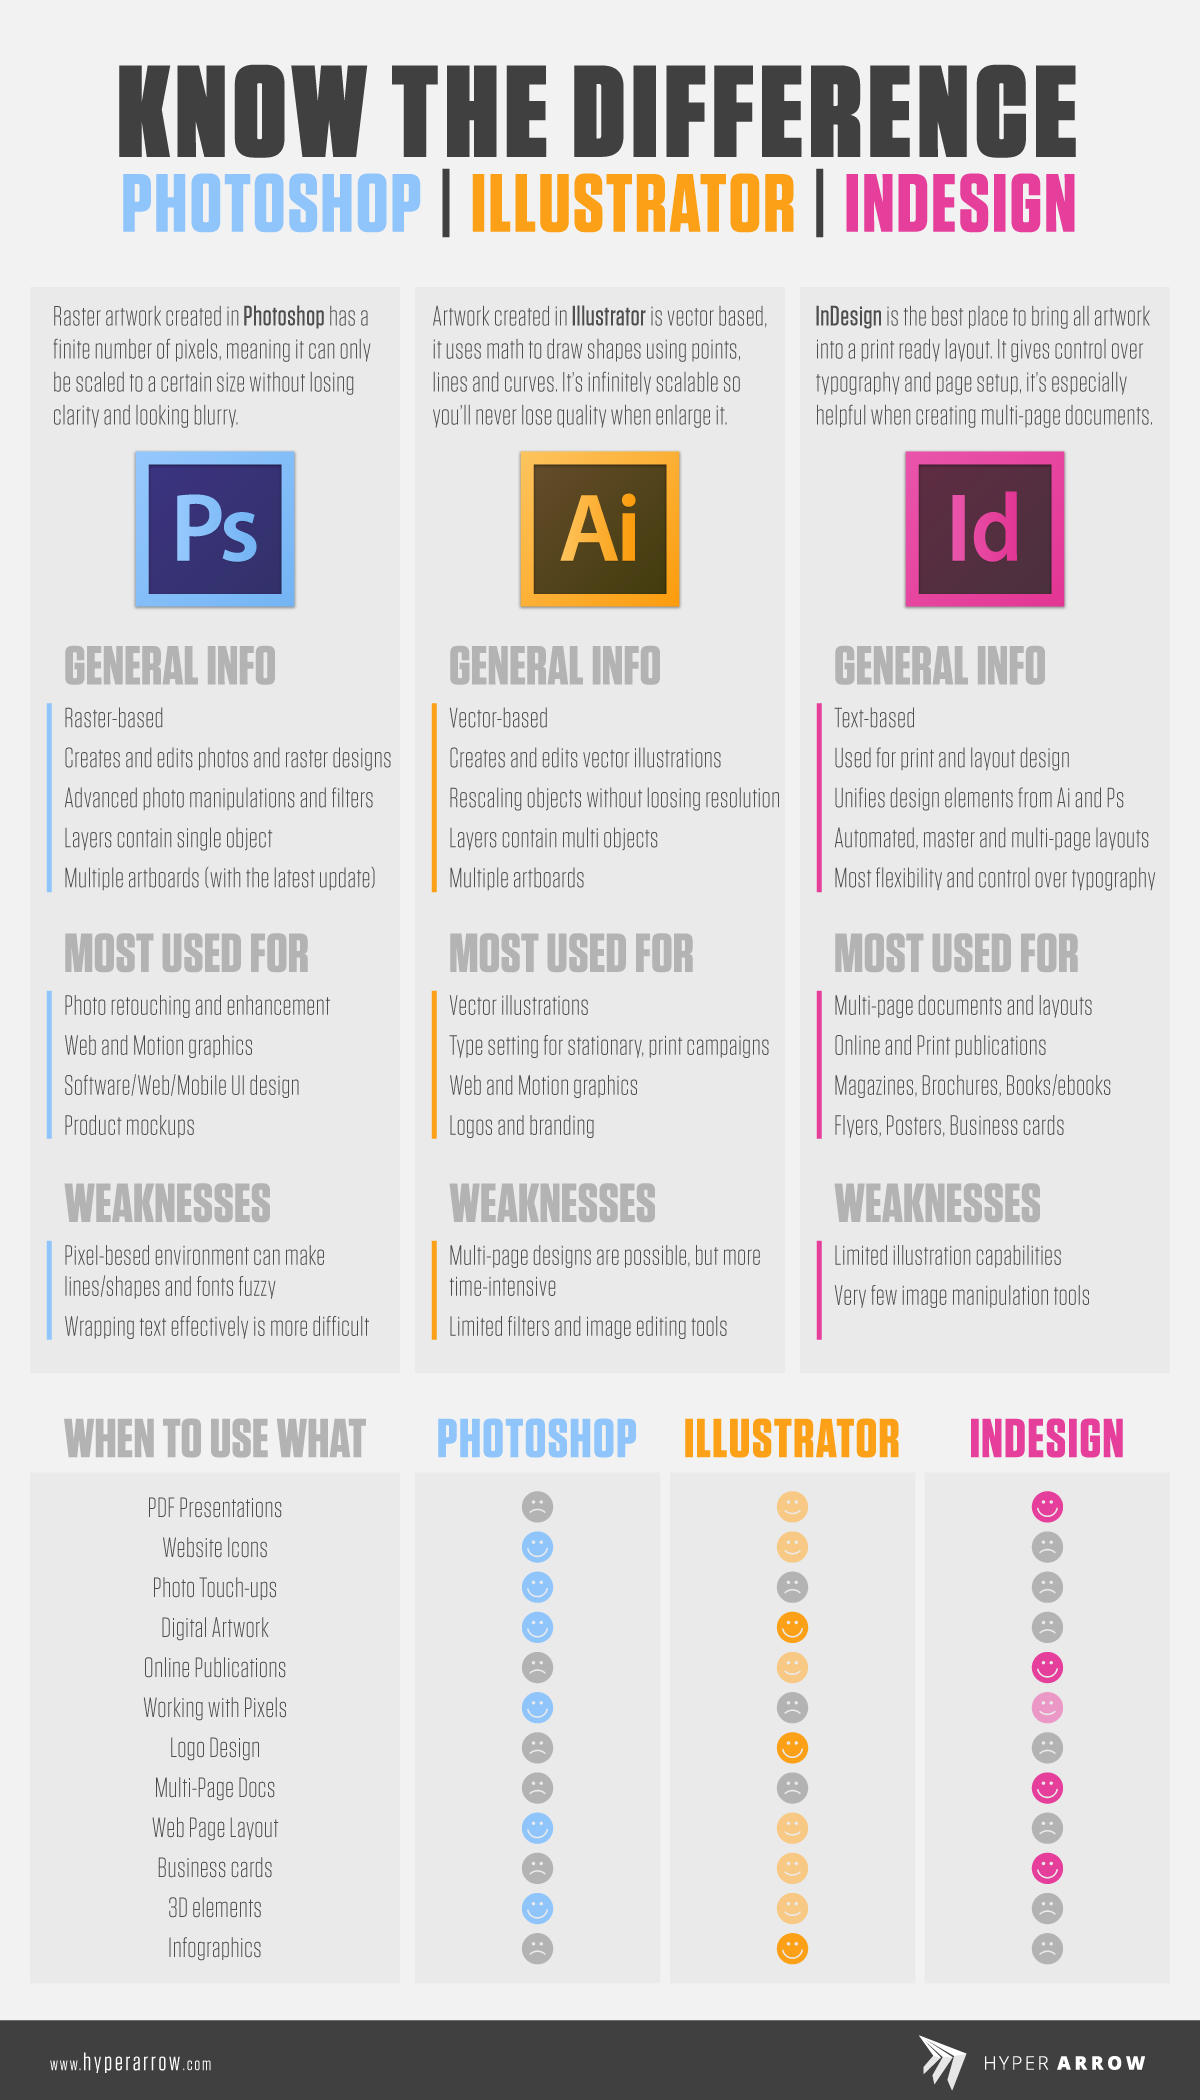 Know the difference between #Photoshop, #Illustrator, and #Indesign. Raster #artwork created in Photoshop has a finite number of pixels, meaning it can only be scaled to a certain size without losing clarity and looking blurry. Artwork created in Illustrator is #vector based, it uses math to draw shapes using points, lines, and curves. It's infinitely scalable so you'll never lose quality when enlarging it. InDesign is the best place to bring all artwork into a print ready layout. #softwaredesign